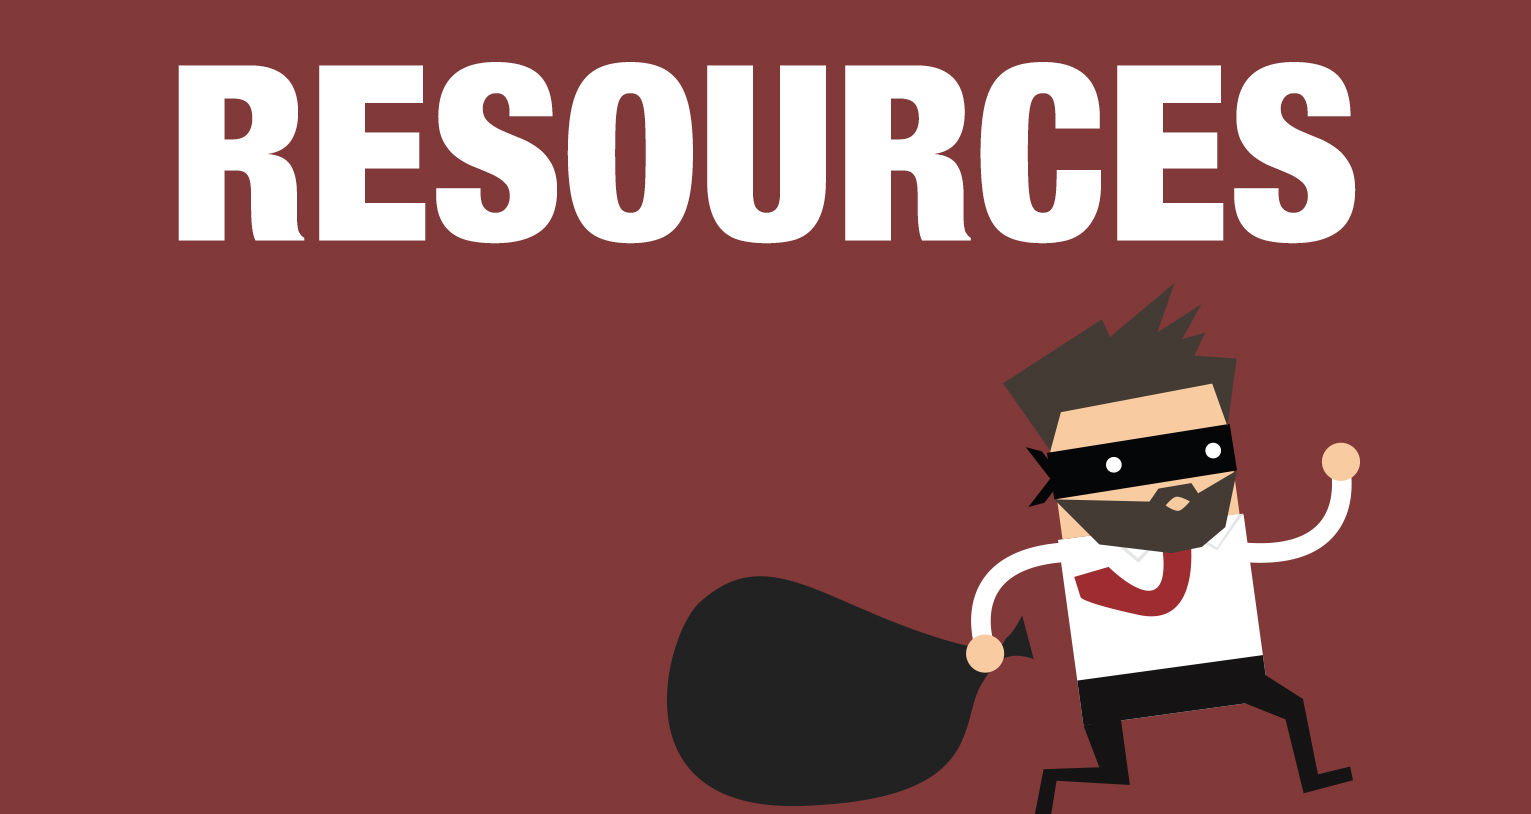 picker-of-locks-feature-image-resources